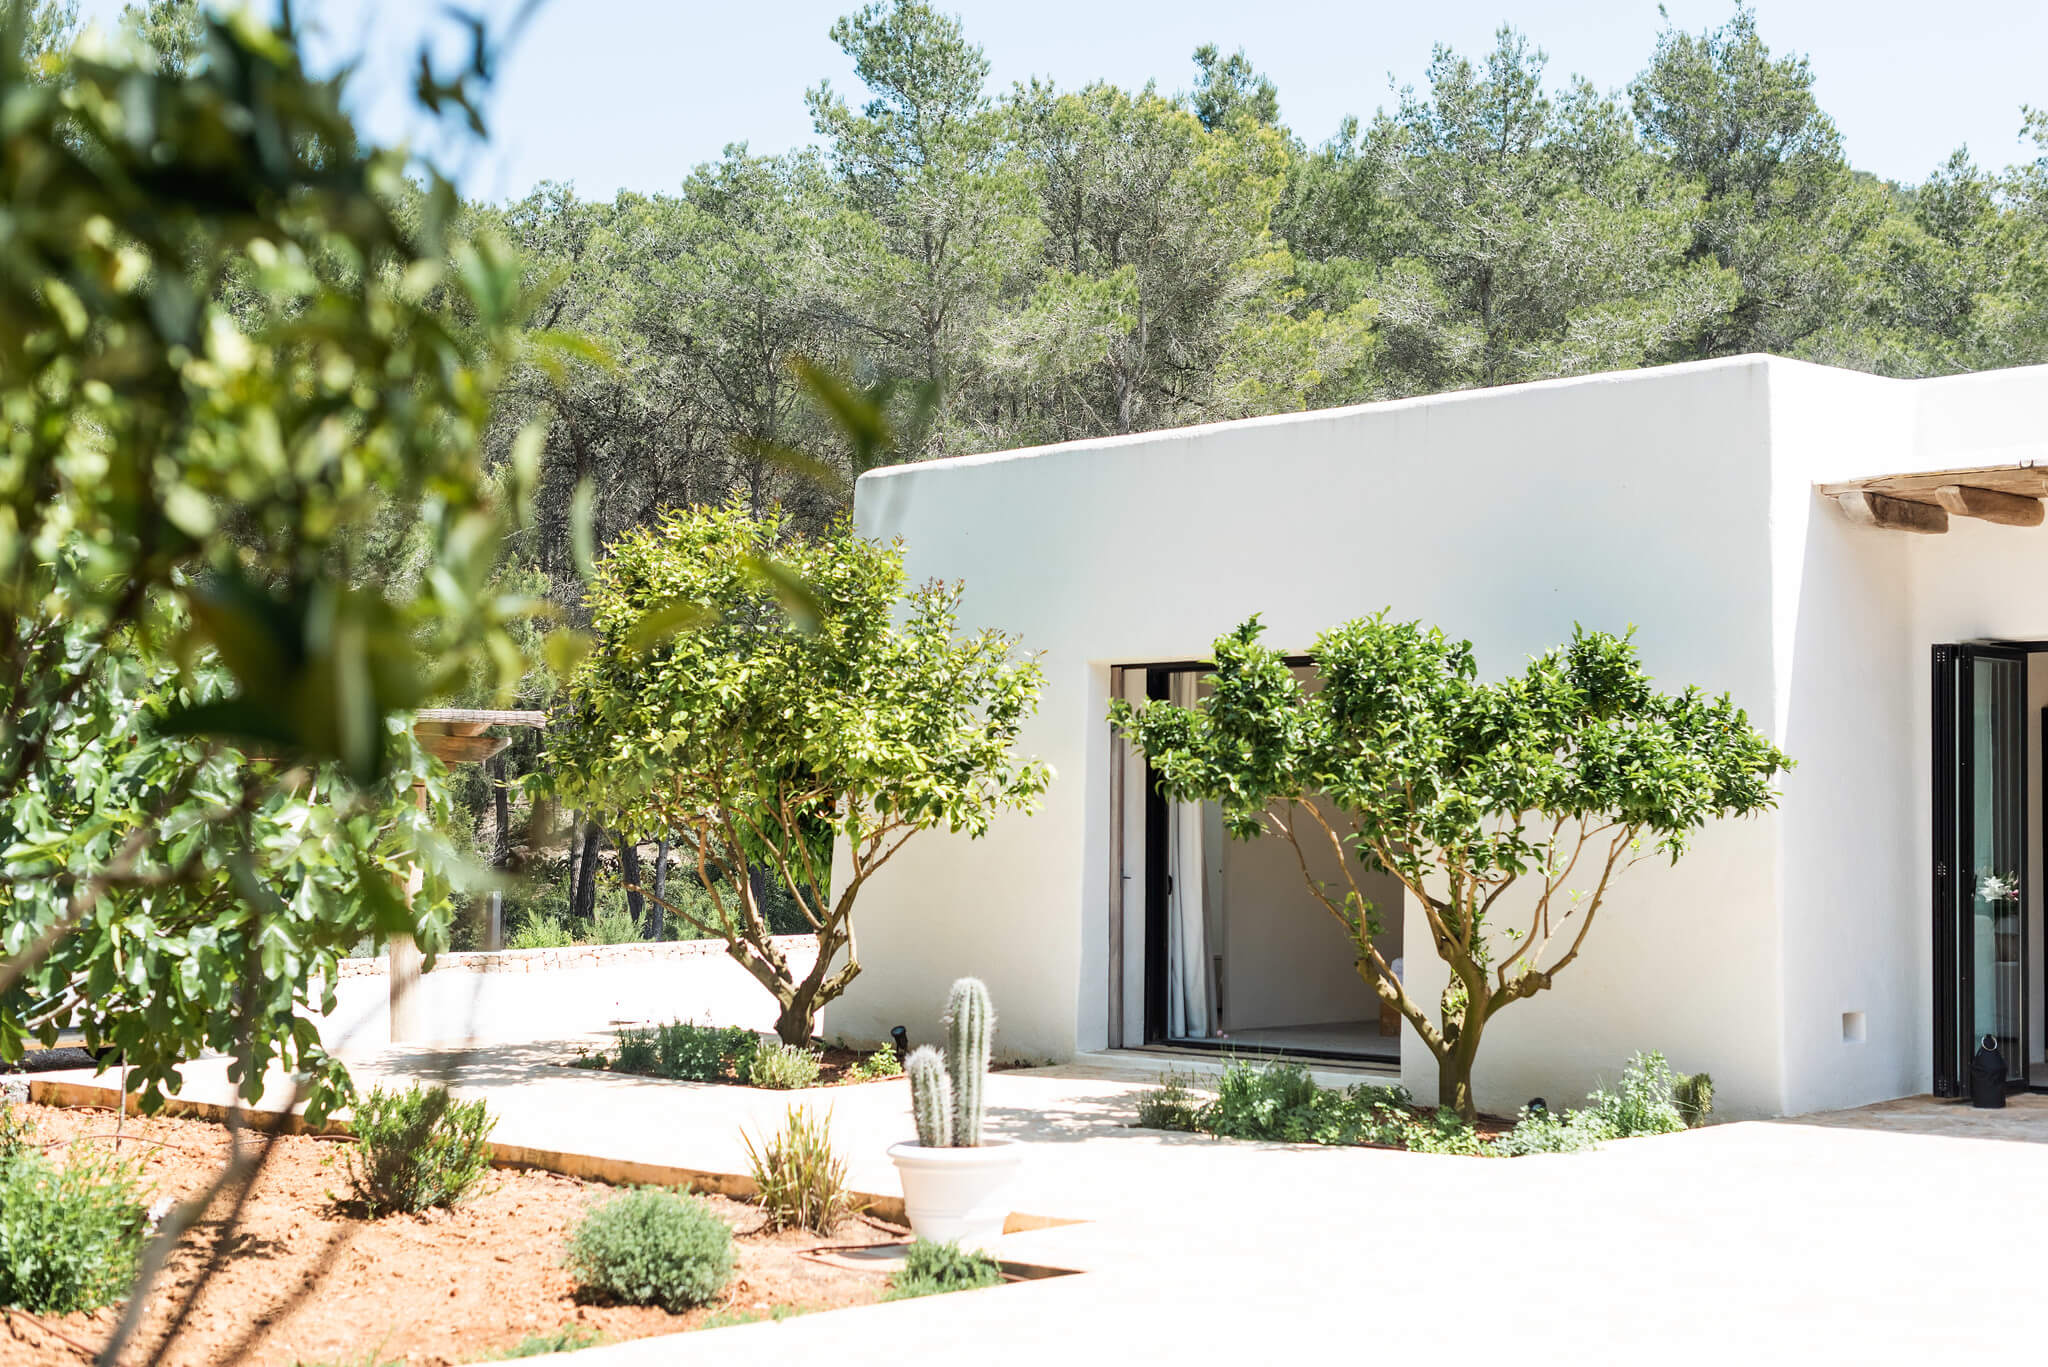 https://www.white-ibiza.com/wp-content/uploads/2020/05/white-ibiza-villas-can-terra-view-to-bedroom.jpg